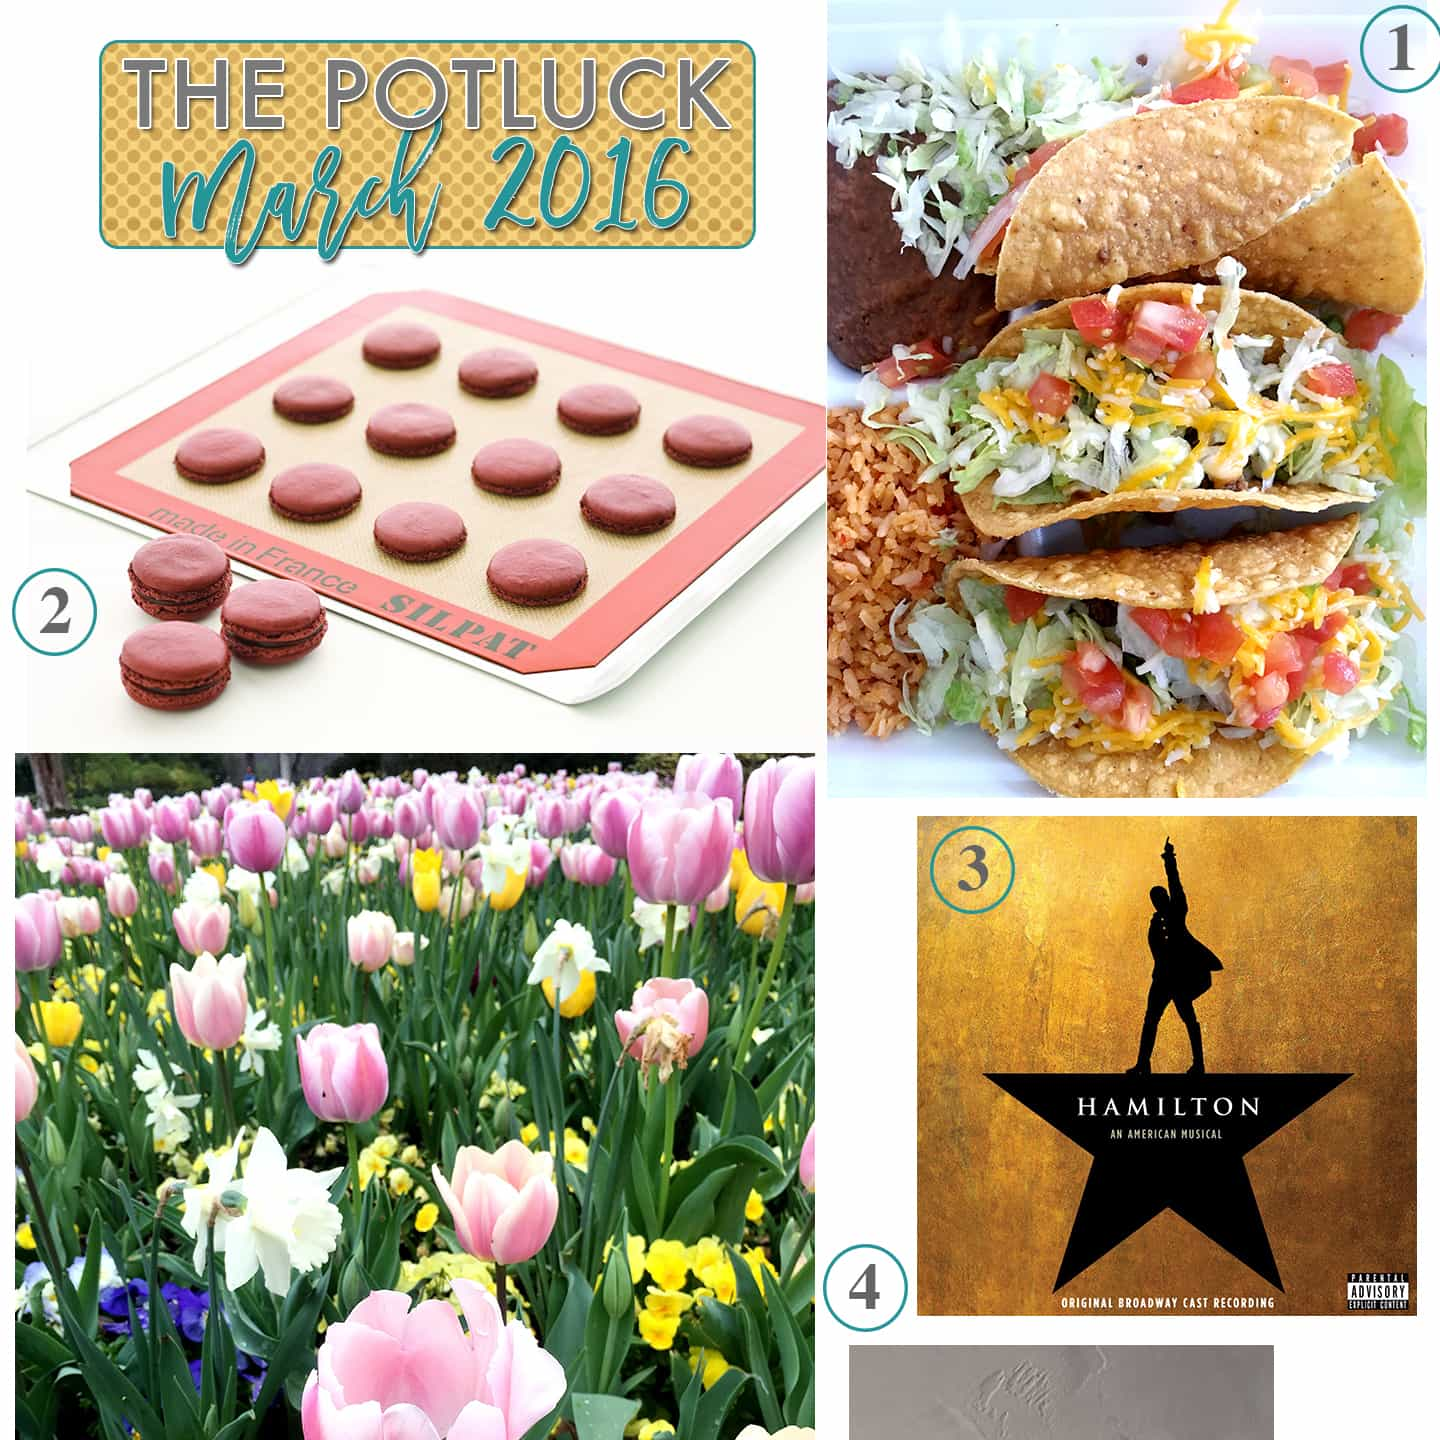 The Potluck: March 2016